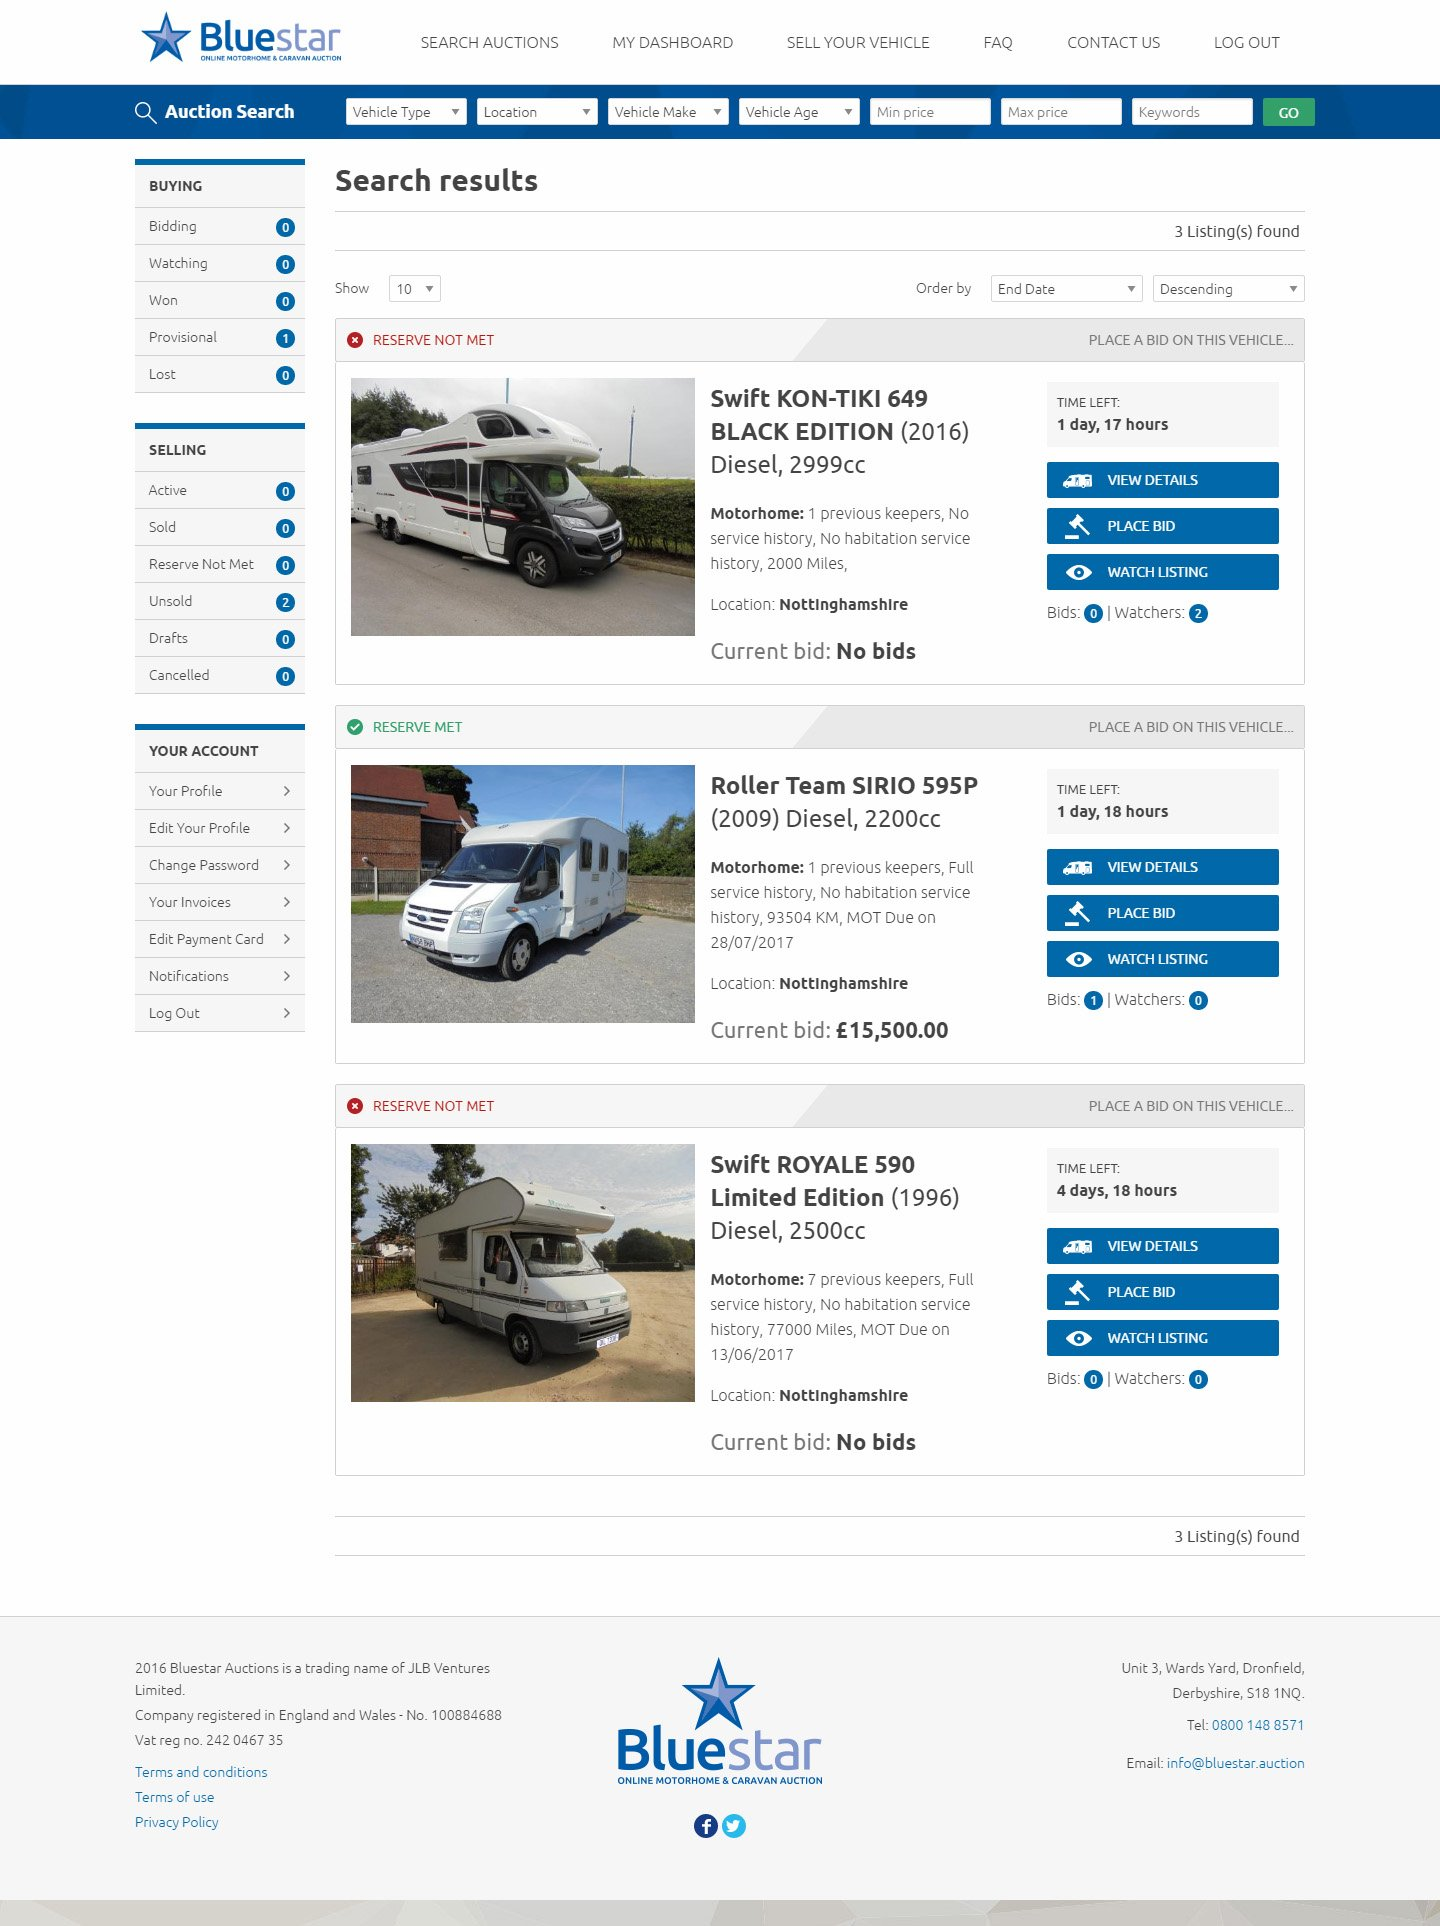 Bluestar Auctions Search Results